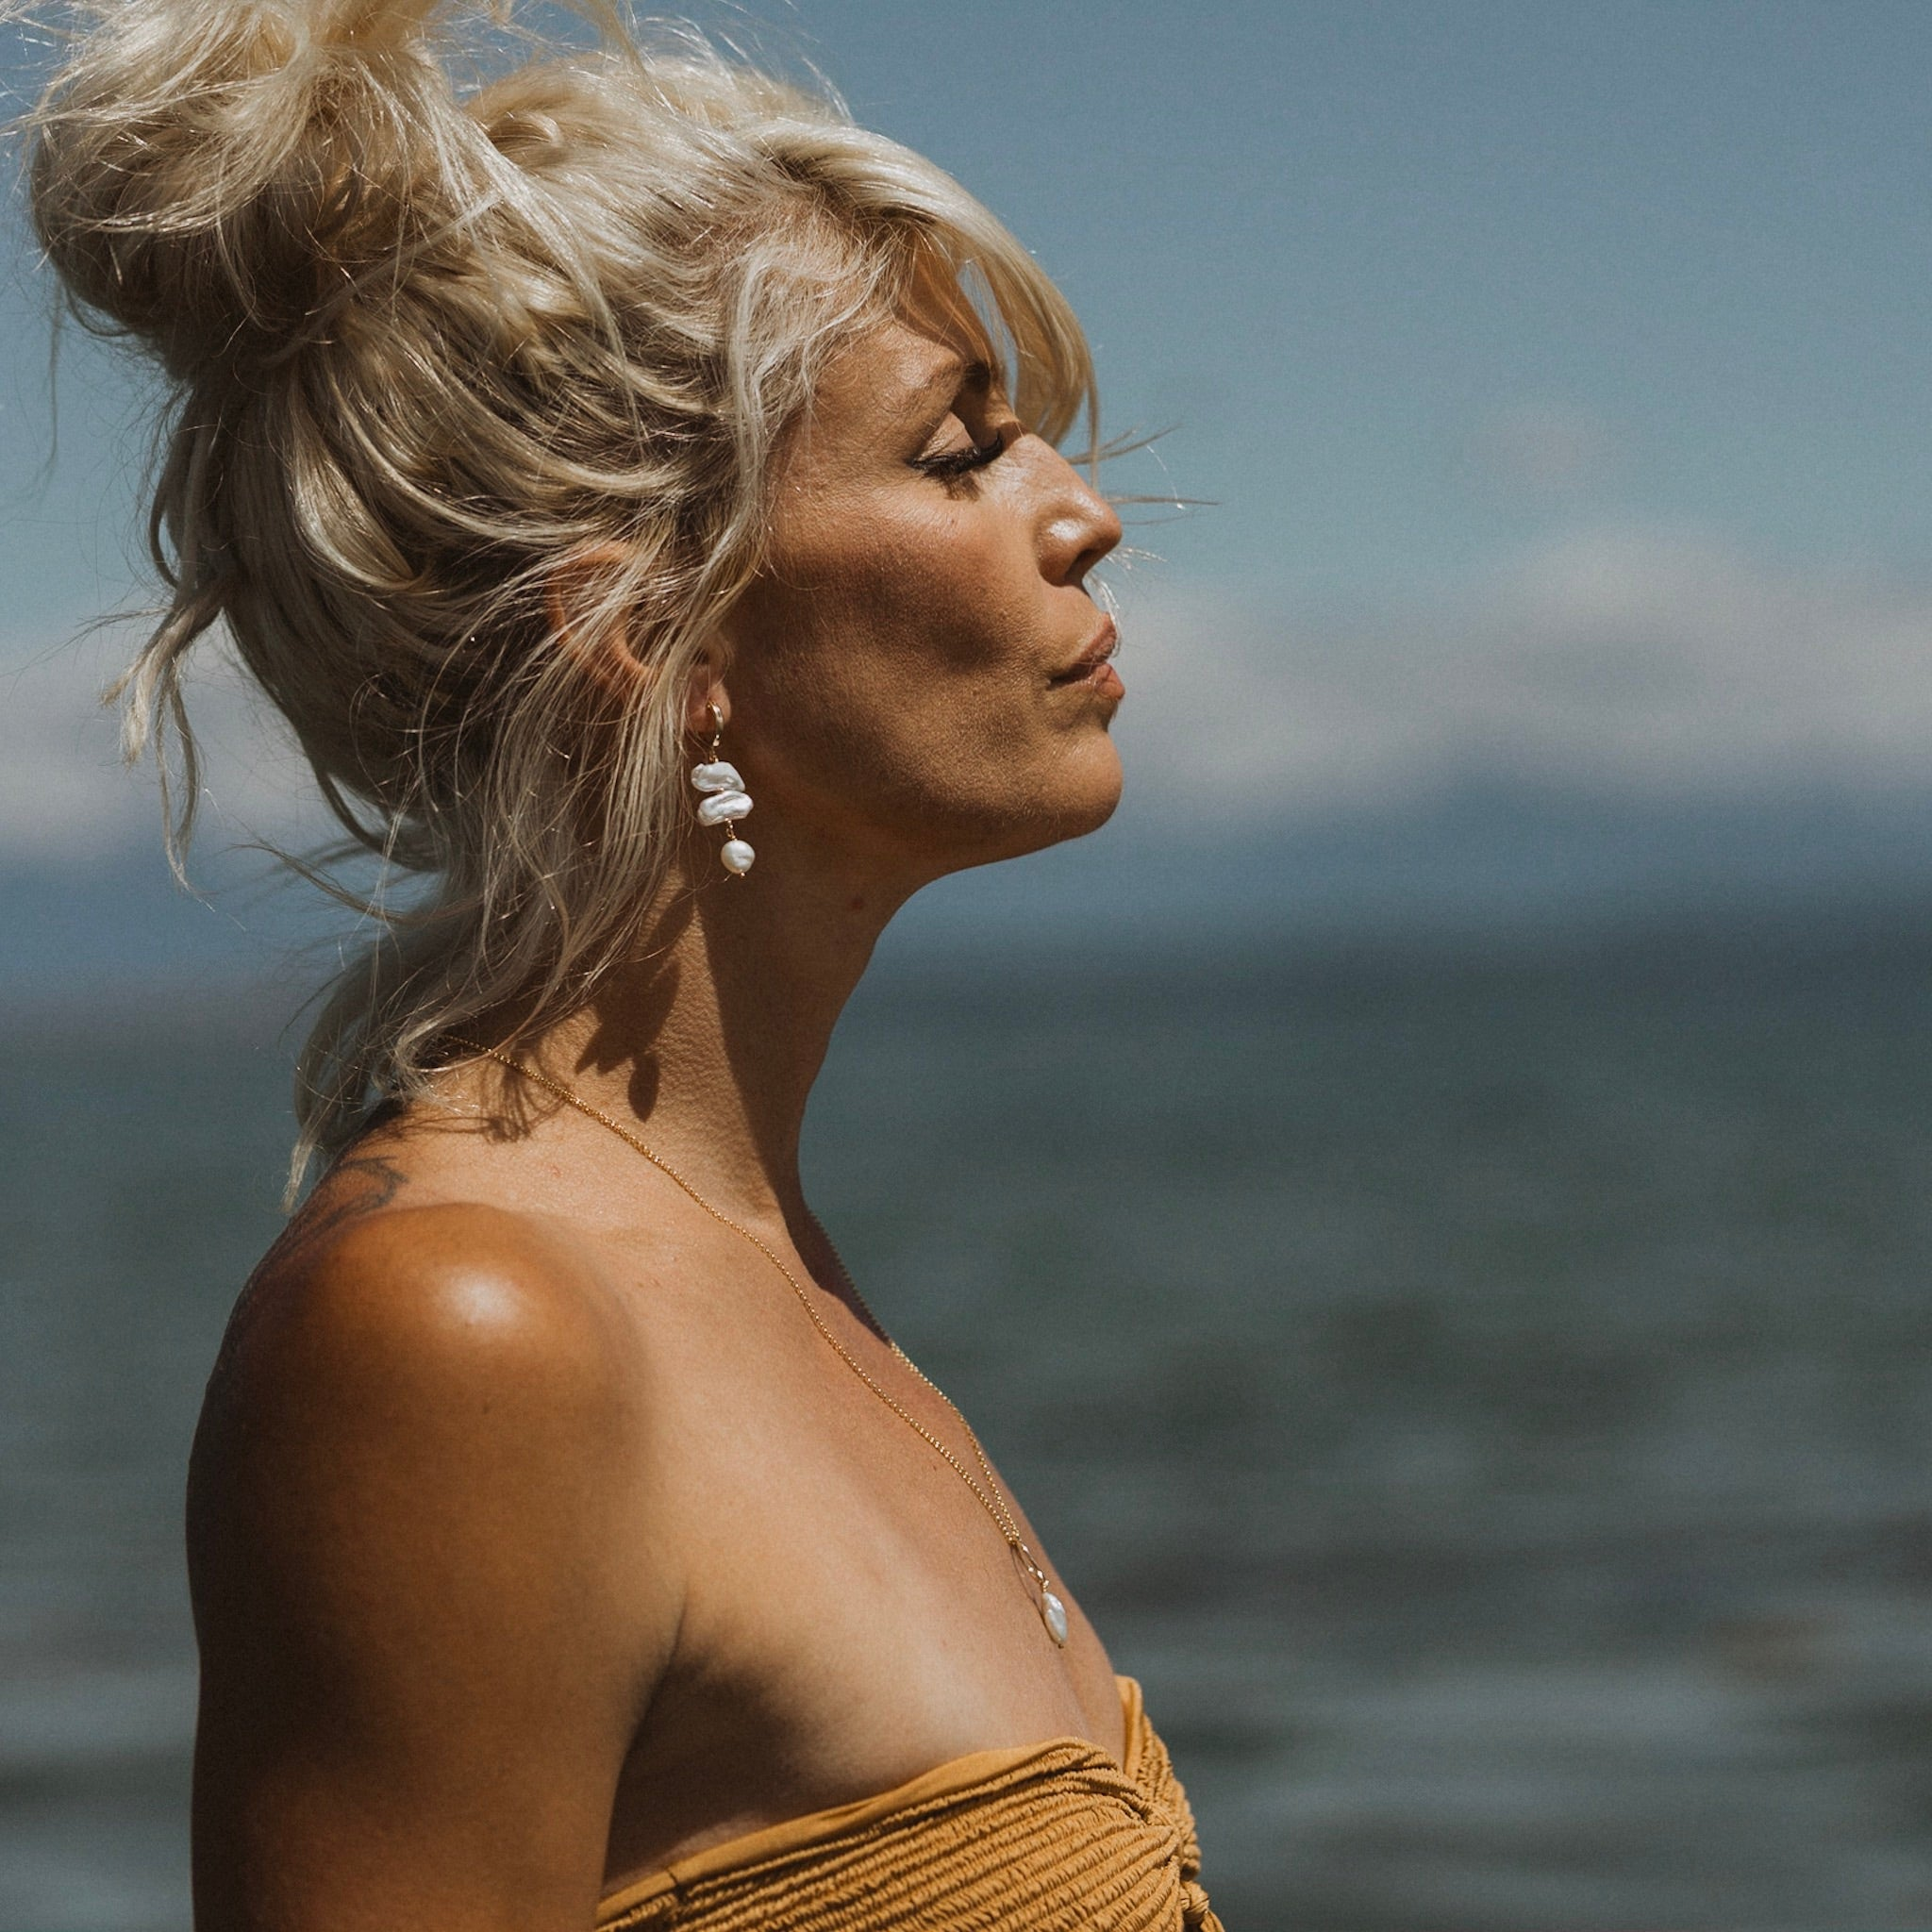 a side profile of a woman with a messy bun in her hair, wearing dangly stacked pearl earrings and a long gold necklace with a pearl pendant. Show in front of a blurred ocean and sky